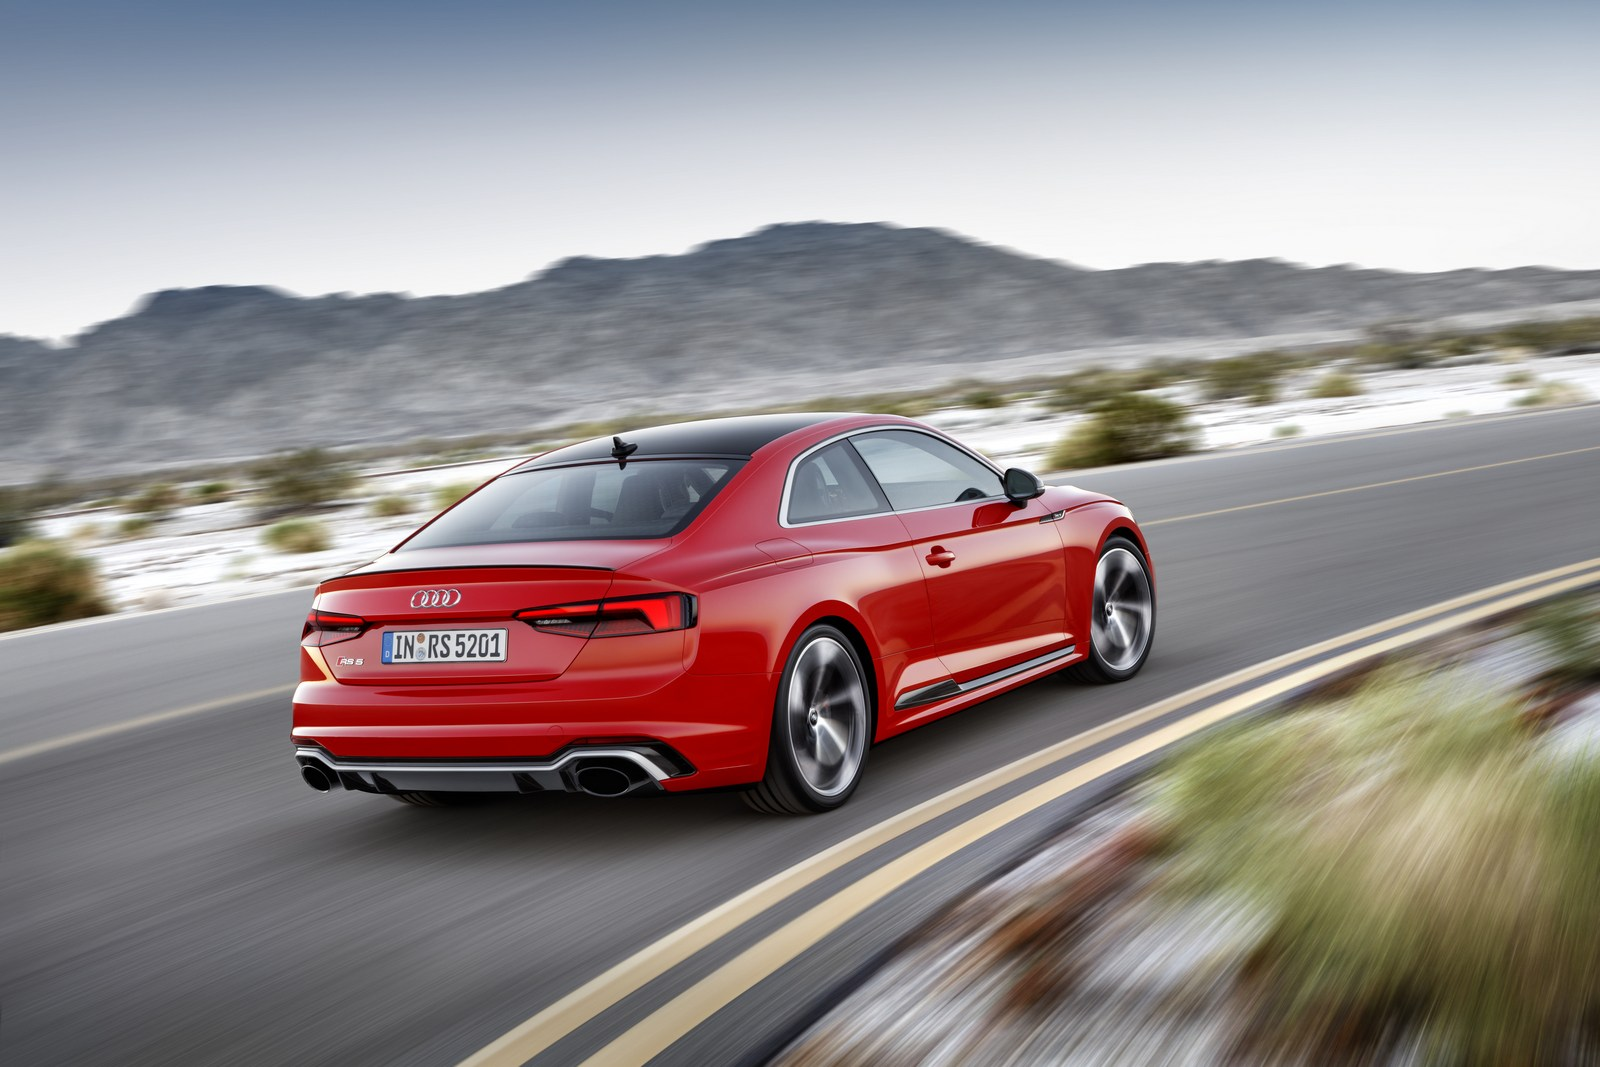 audi rs5 coupe is even faster than what the company claims carscoops. Black Bedroom Furniture Sets. Home Design Ideas